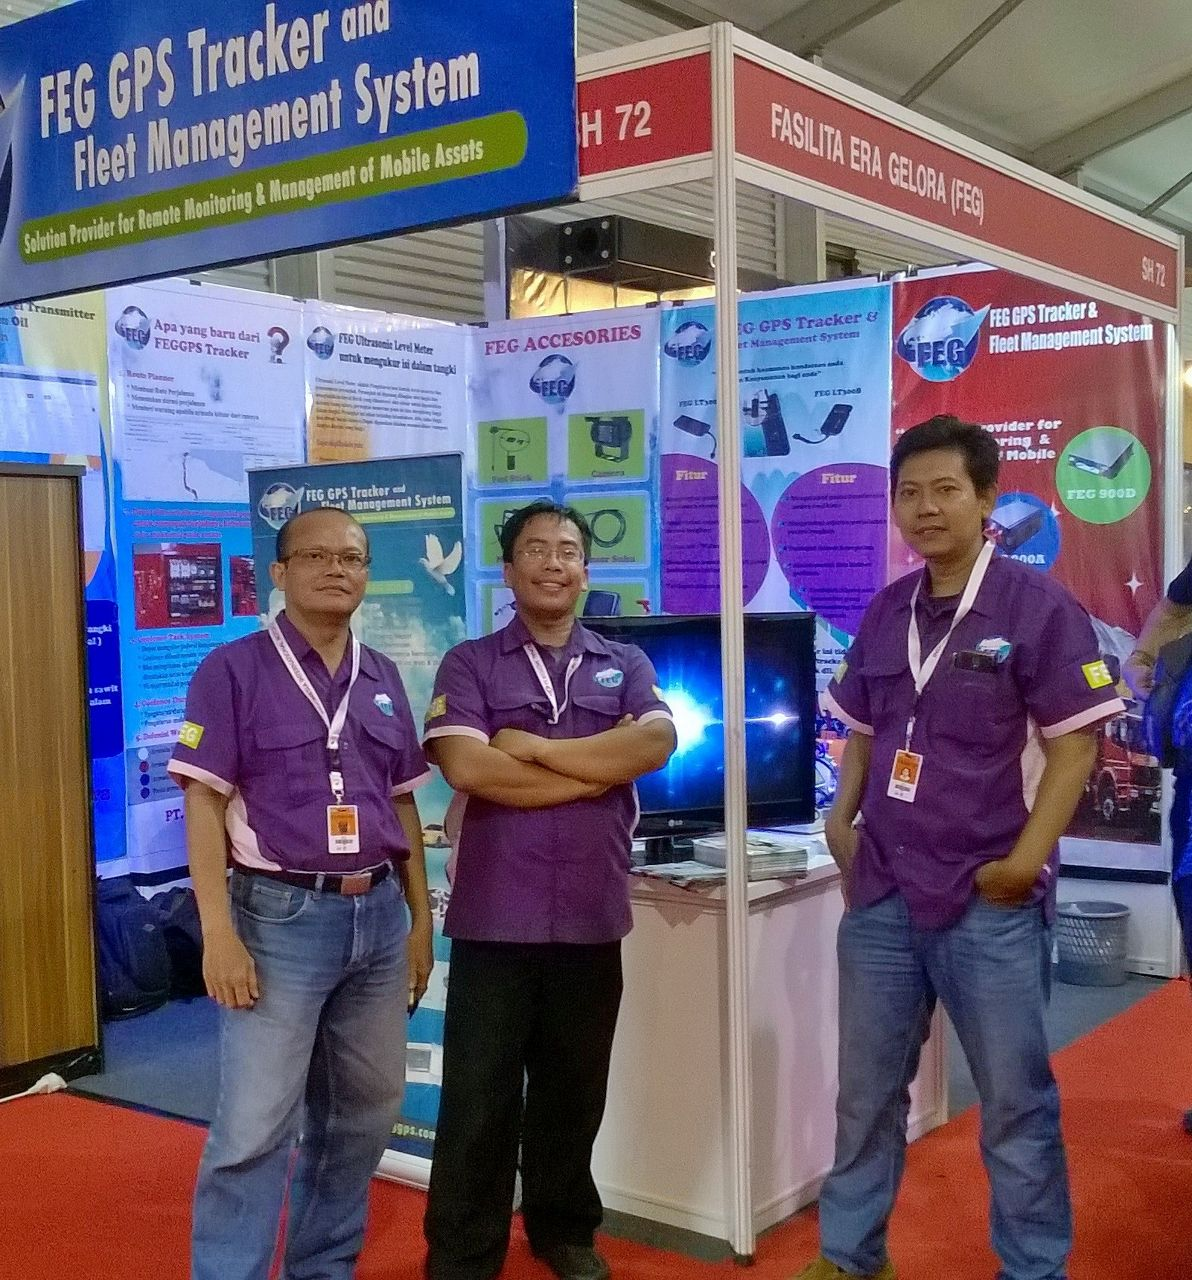 FEG GPS Tracker Team